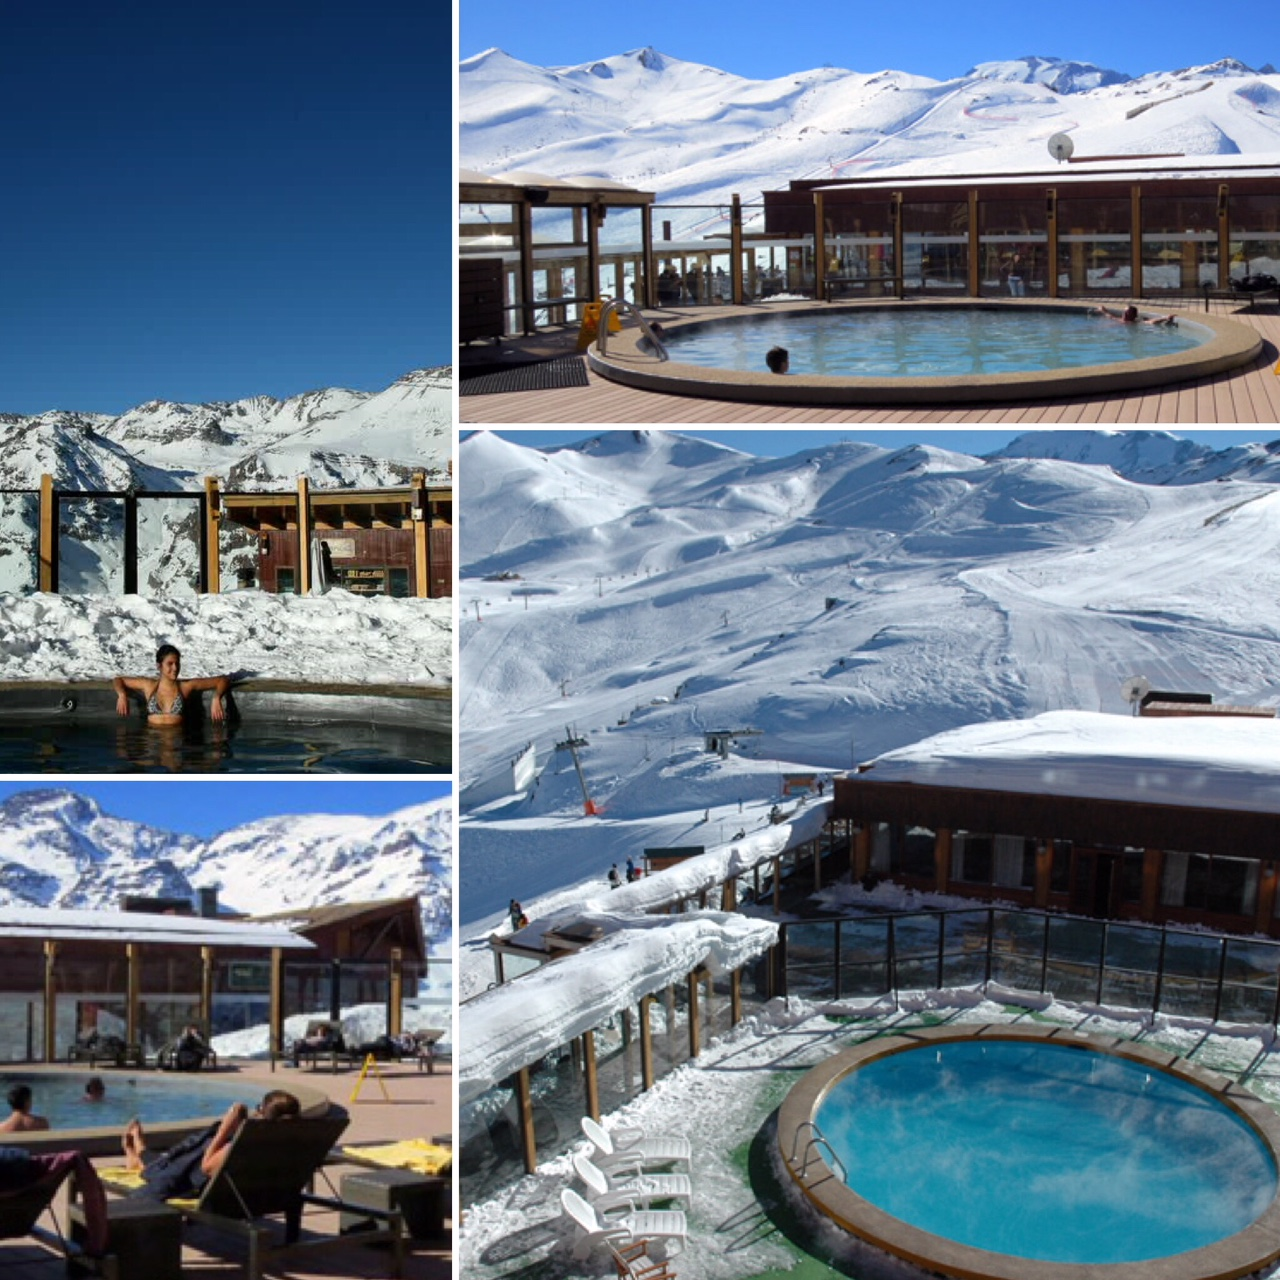 the pool at Valle Nevado